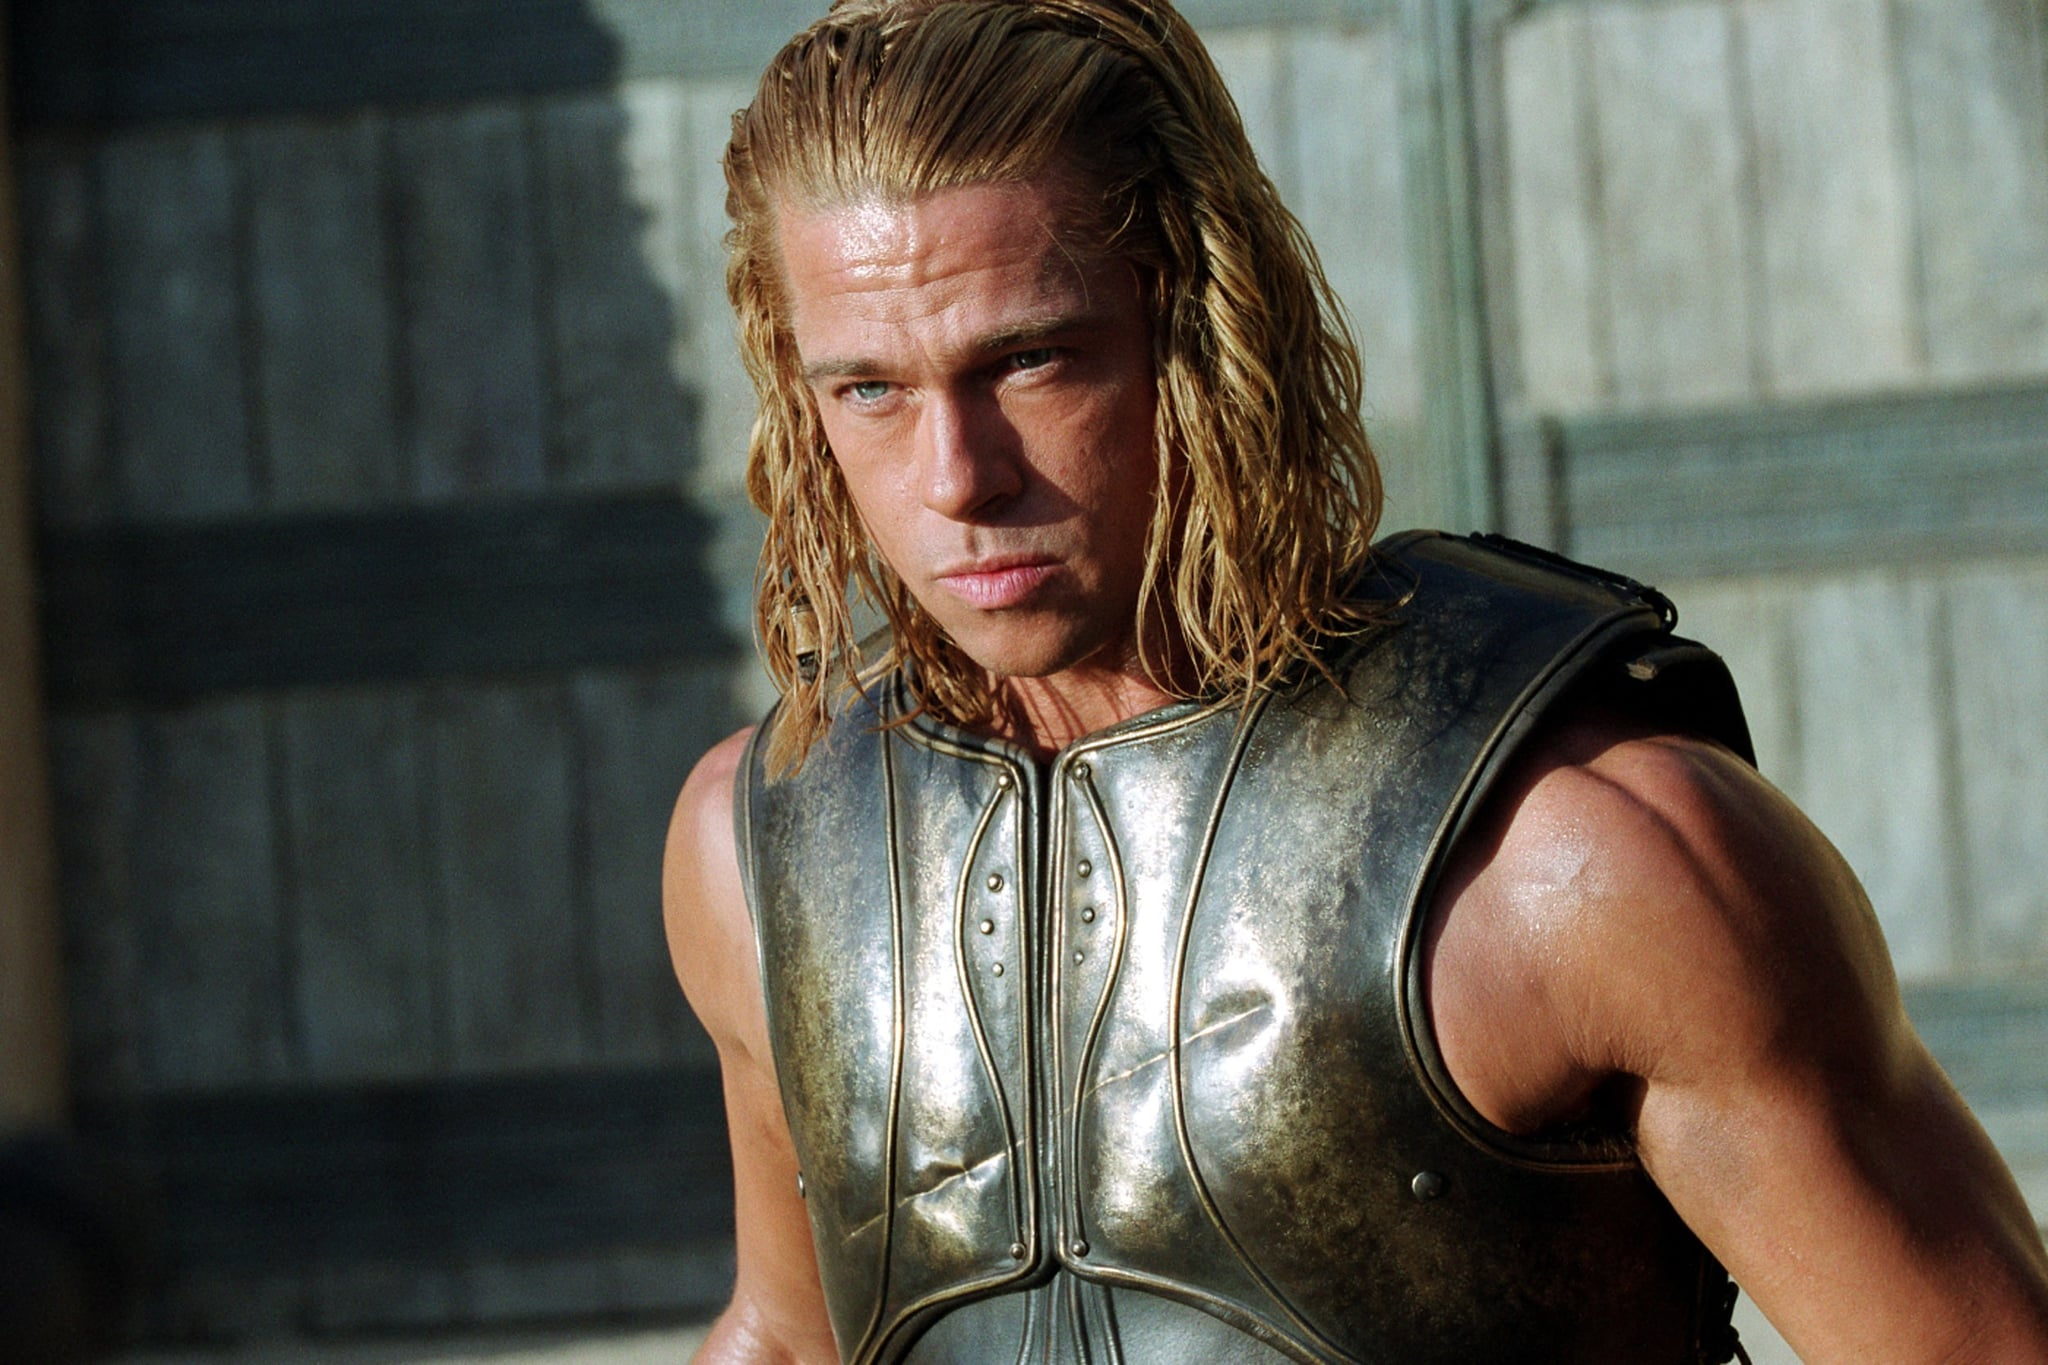 Brad Pitt as Achilles | We'd Time Travel For These Hot ... Achilles Brad Pitt Hair